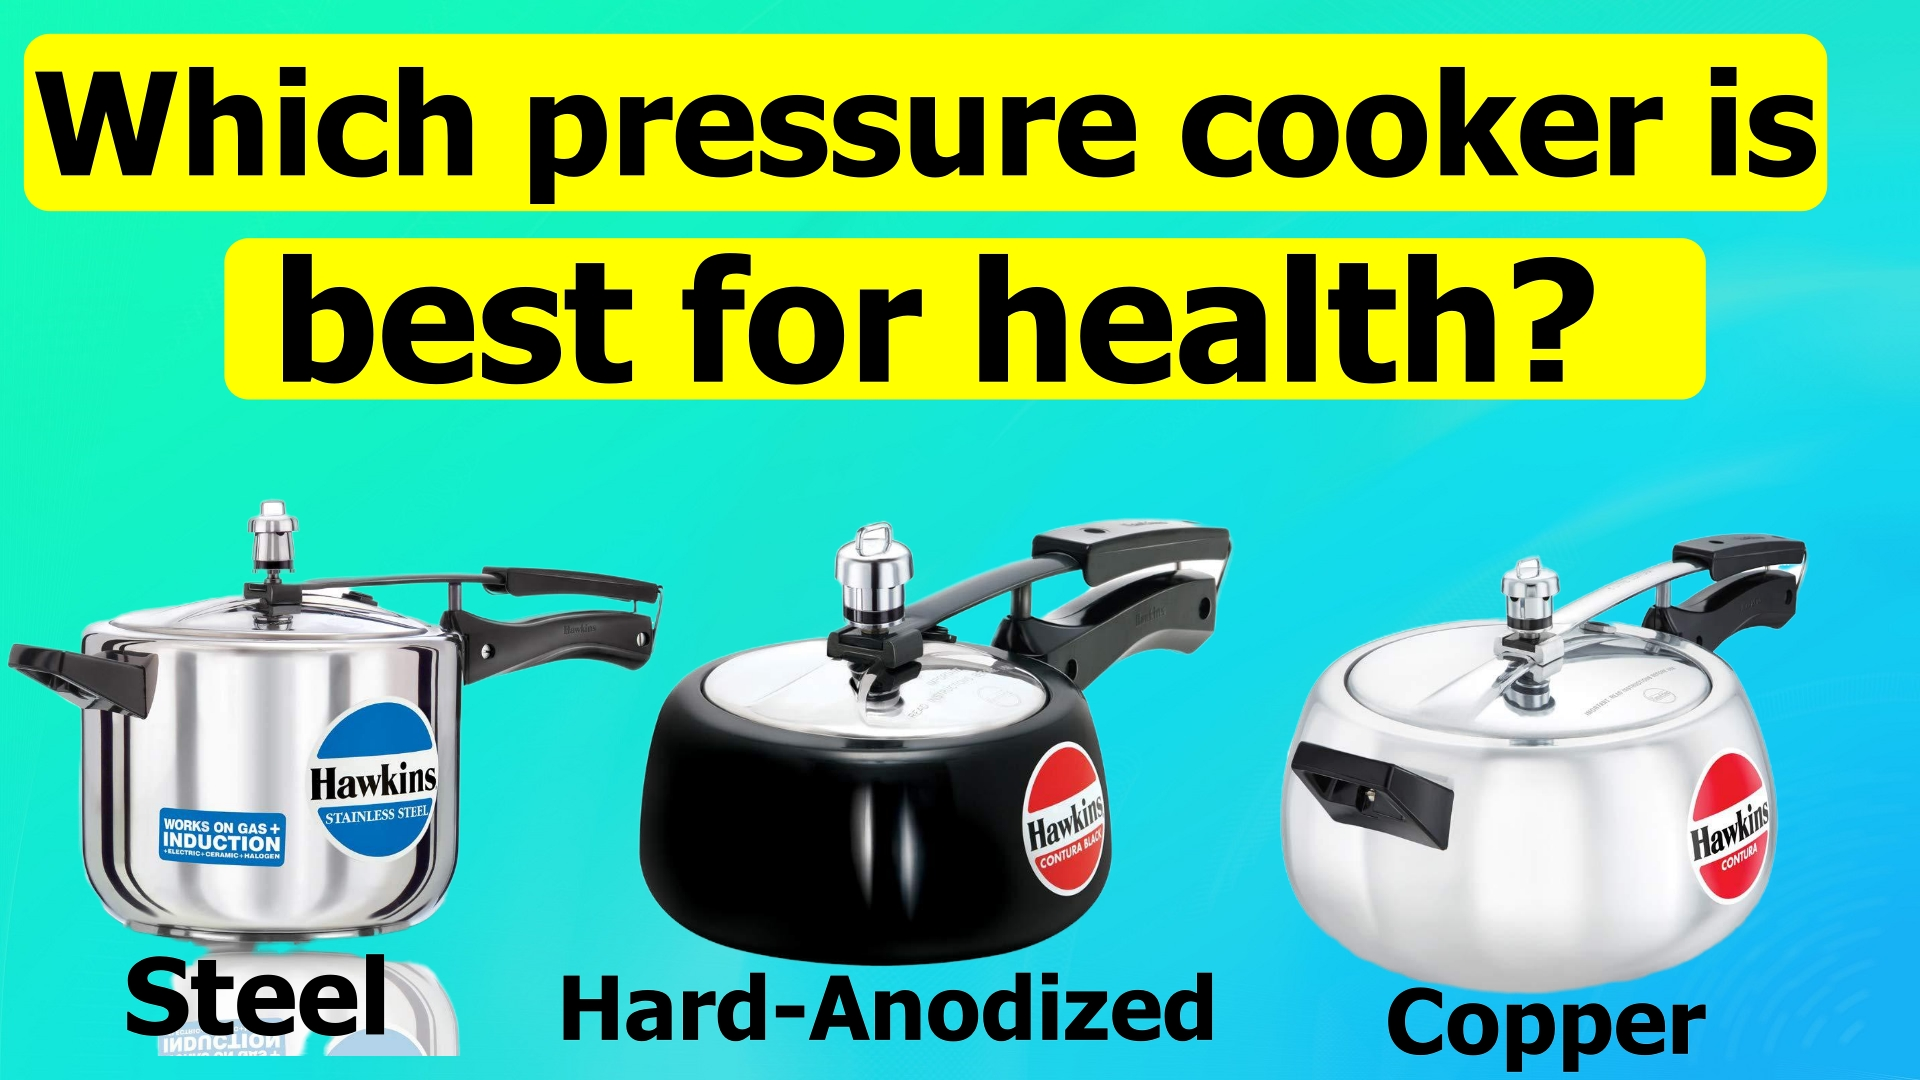 Which pressure cooker is best for health